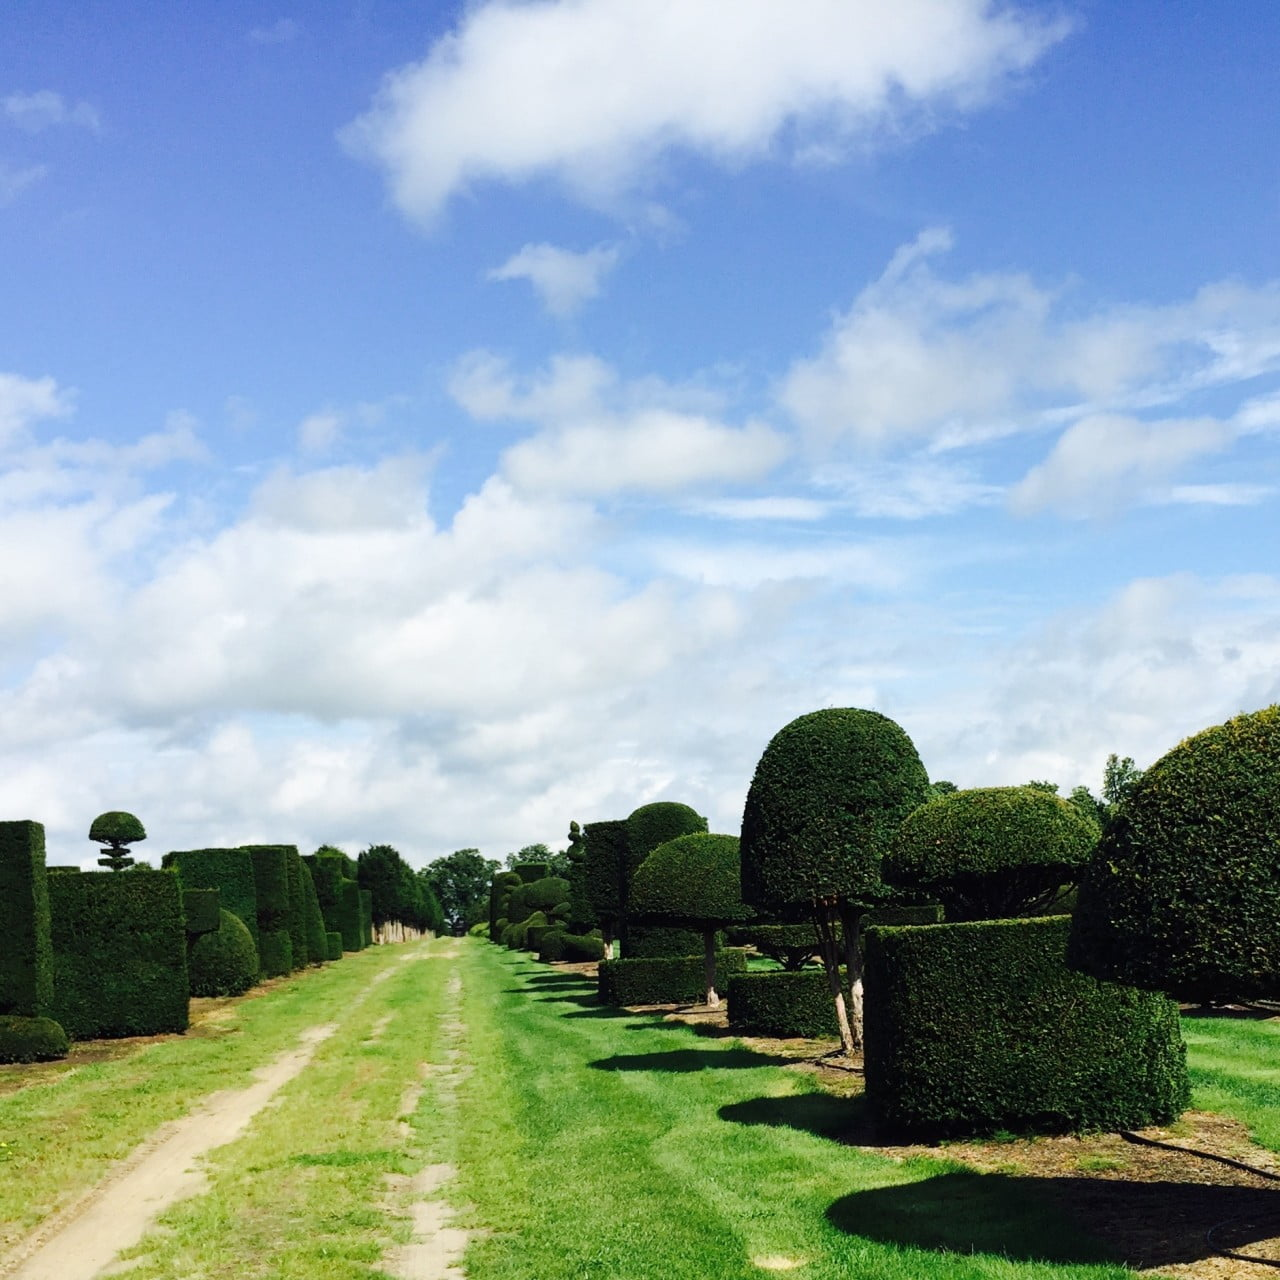 Here we are selecting topiary for clients from these fantastic yew specimens